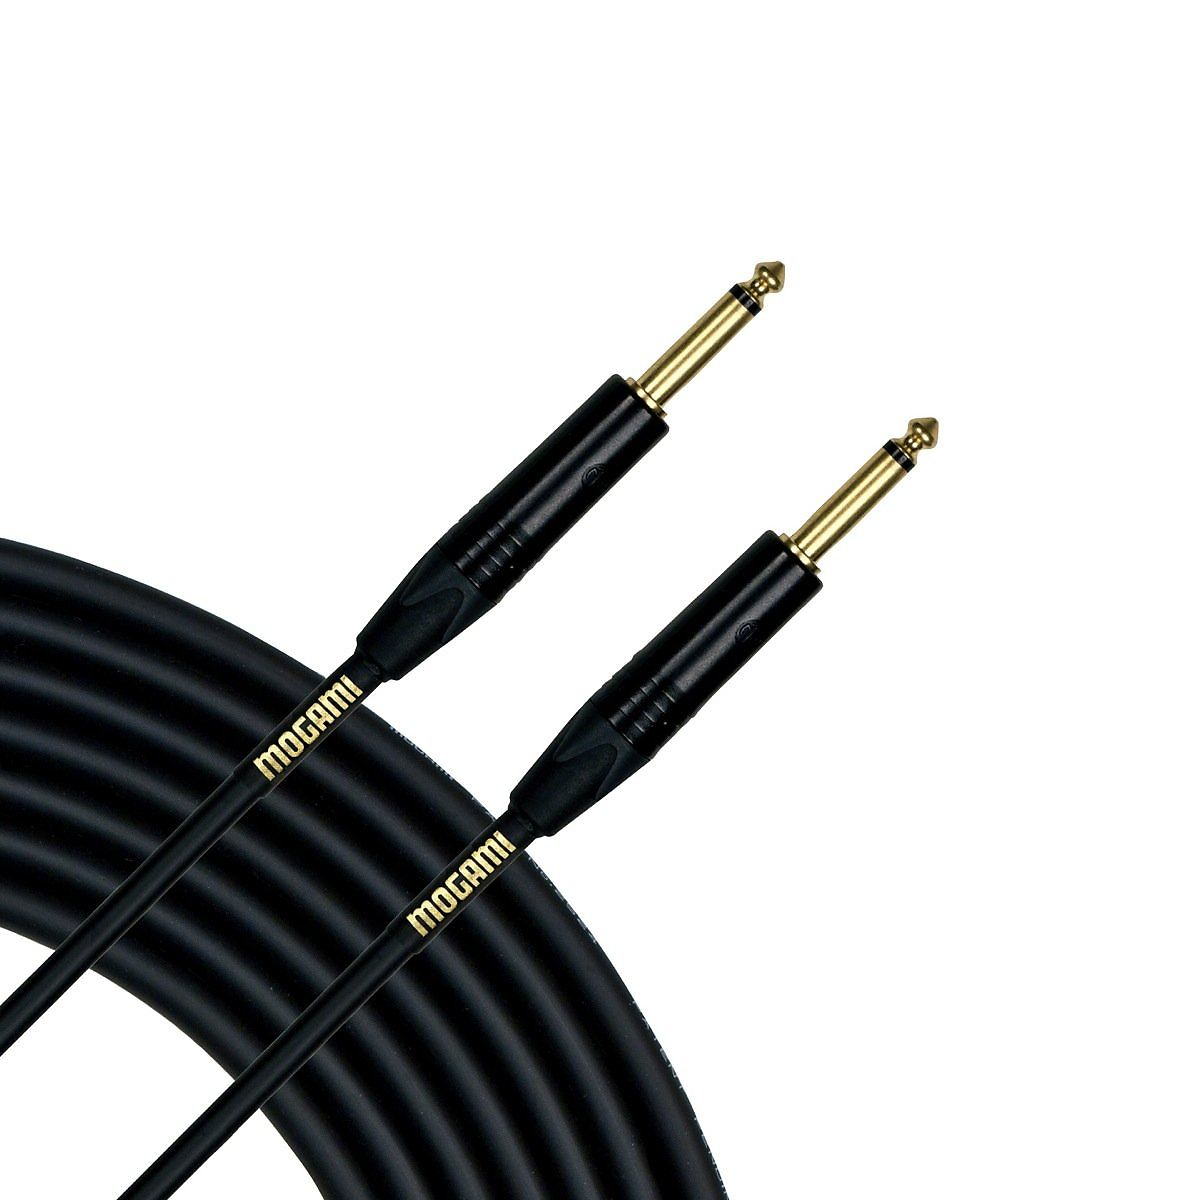 Mogami Gold Guitar/Instrument Cable, 25 Foot